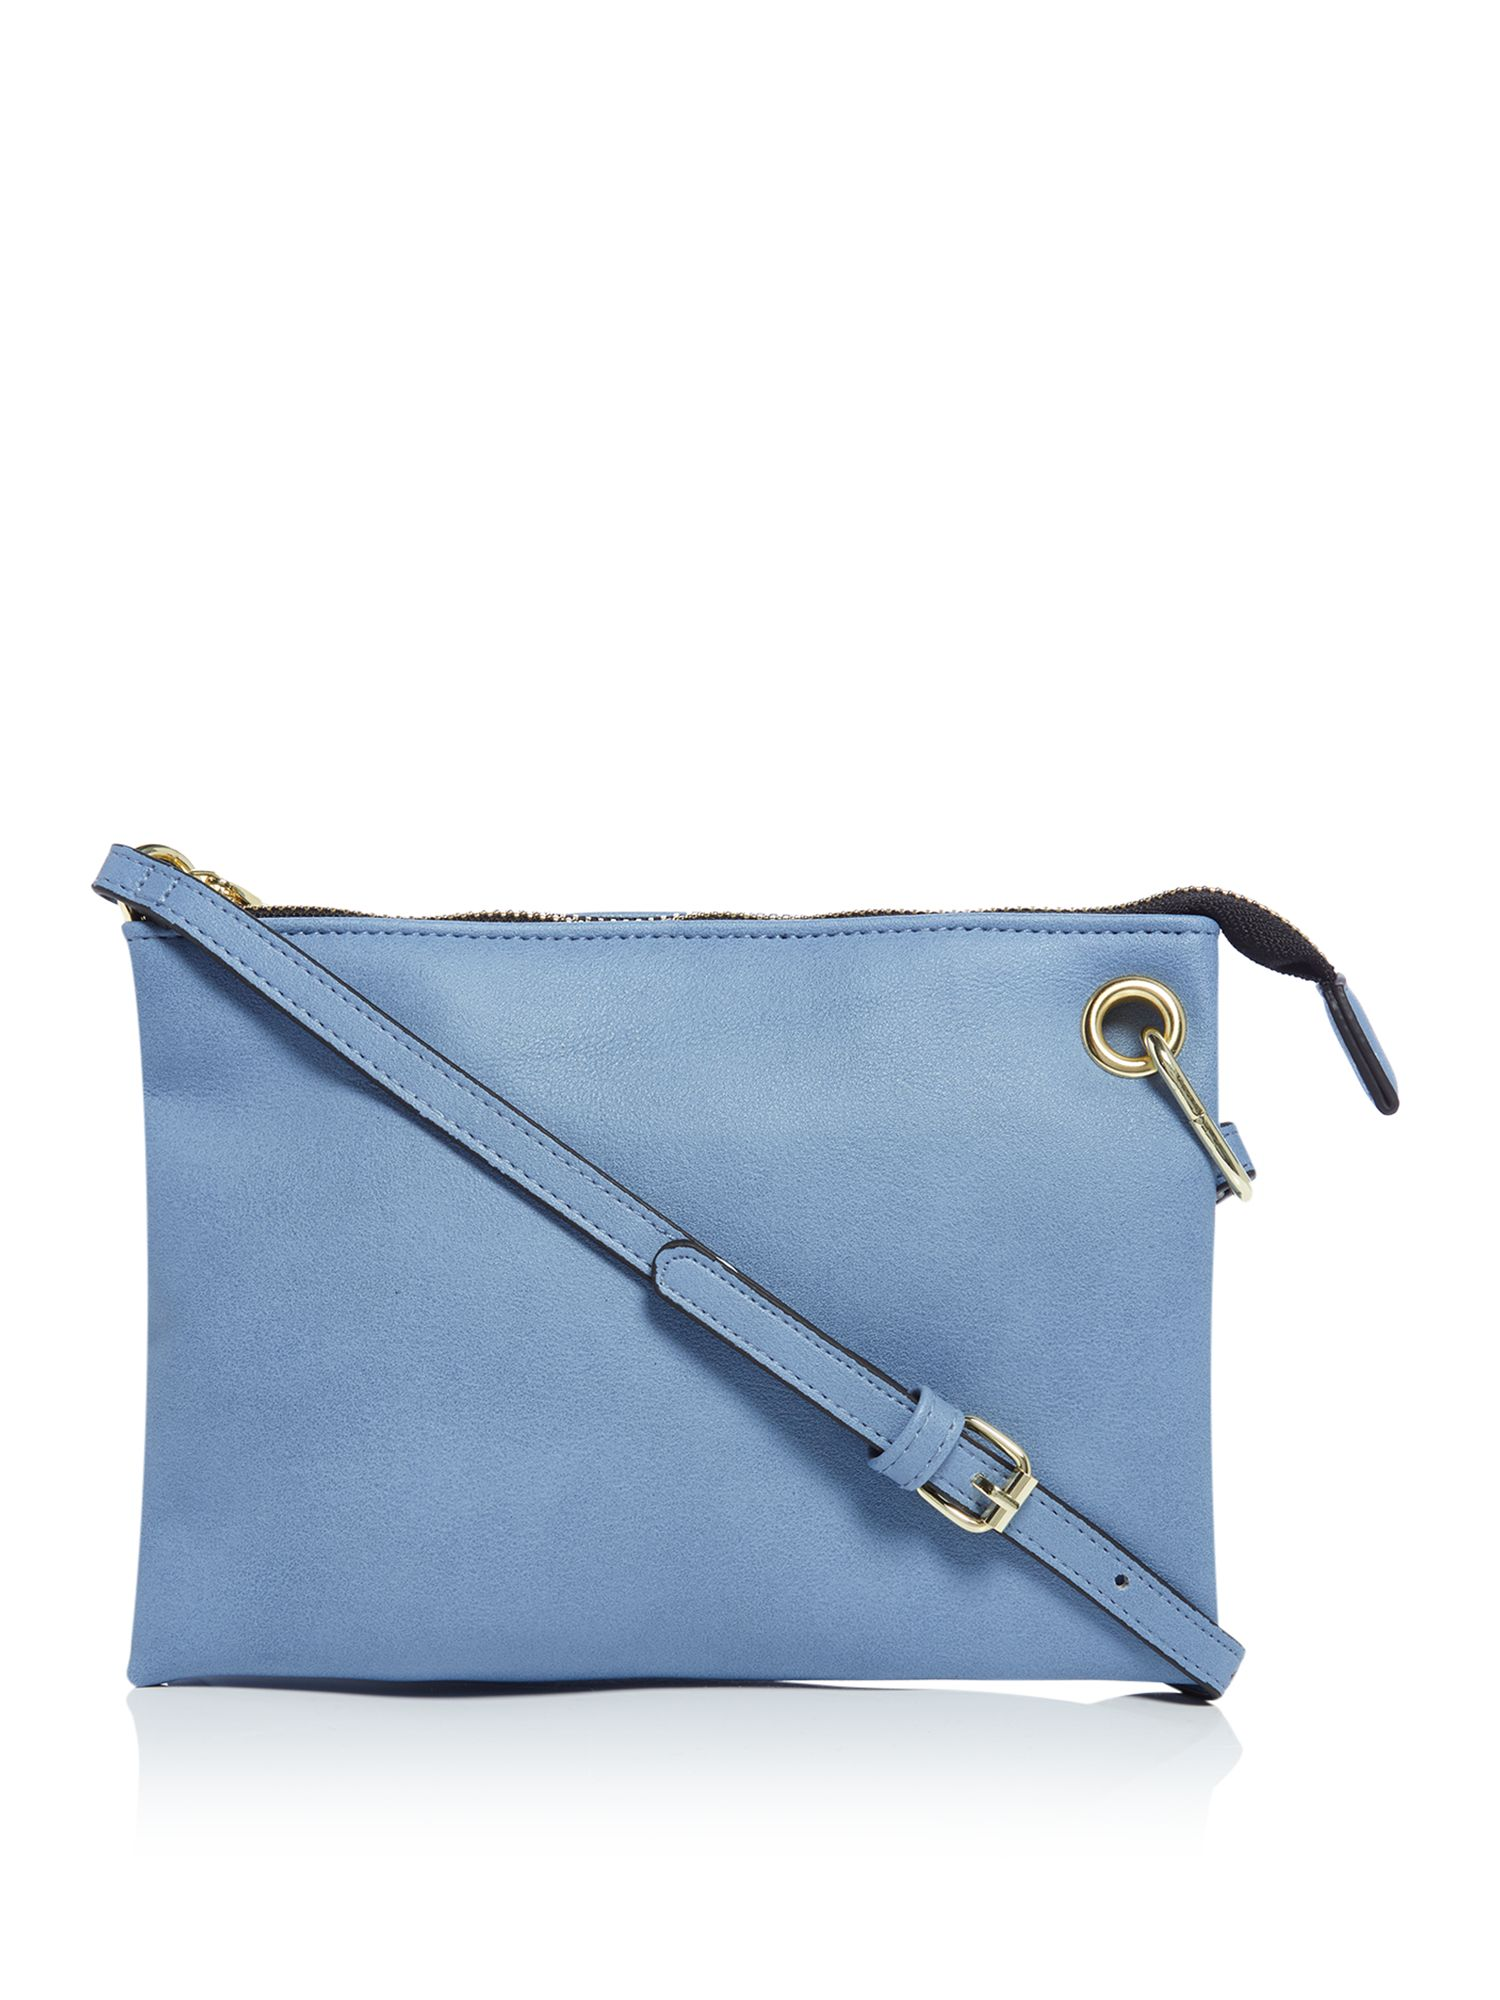 Therapy Fearne dual compartment crossbody bag, Blue